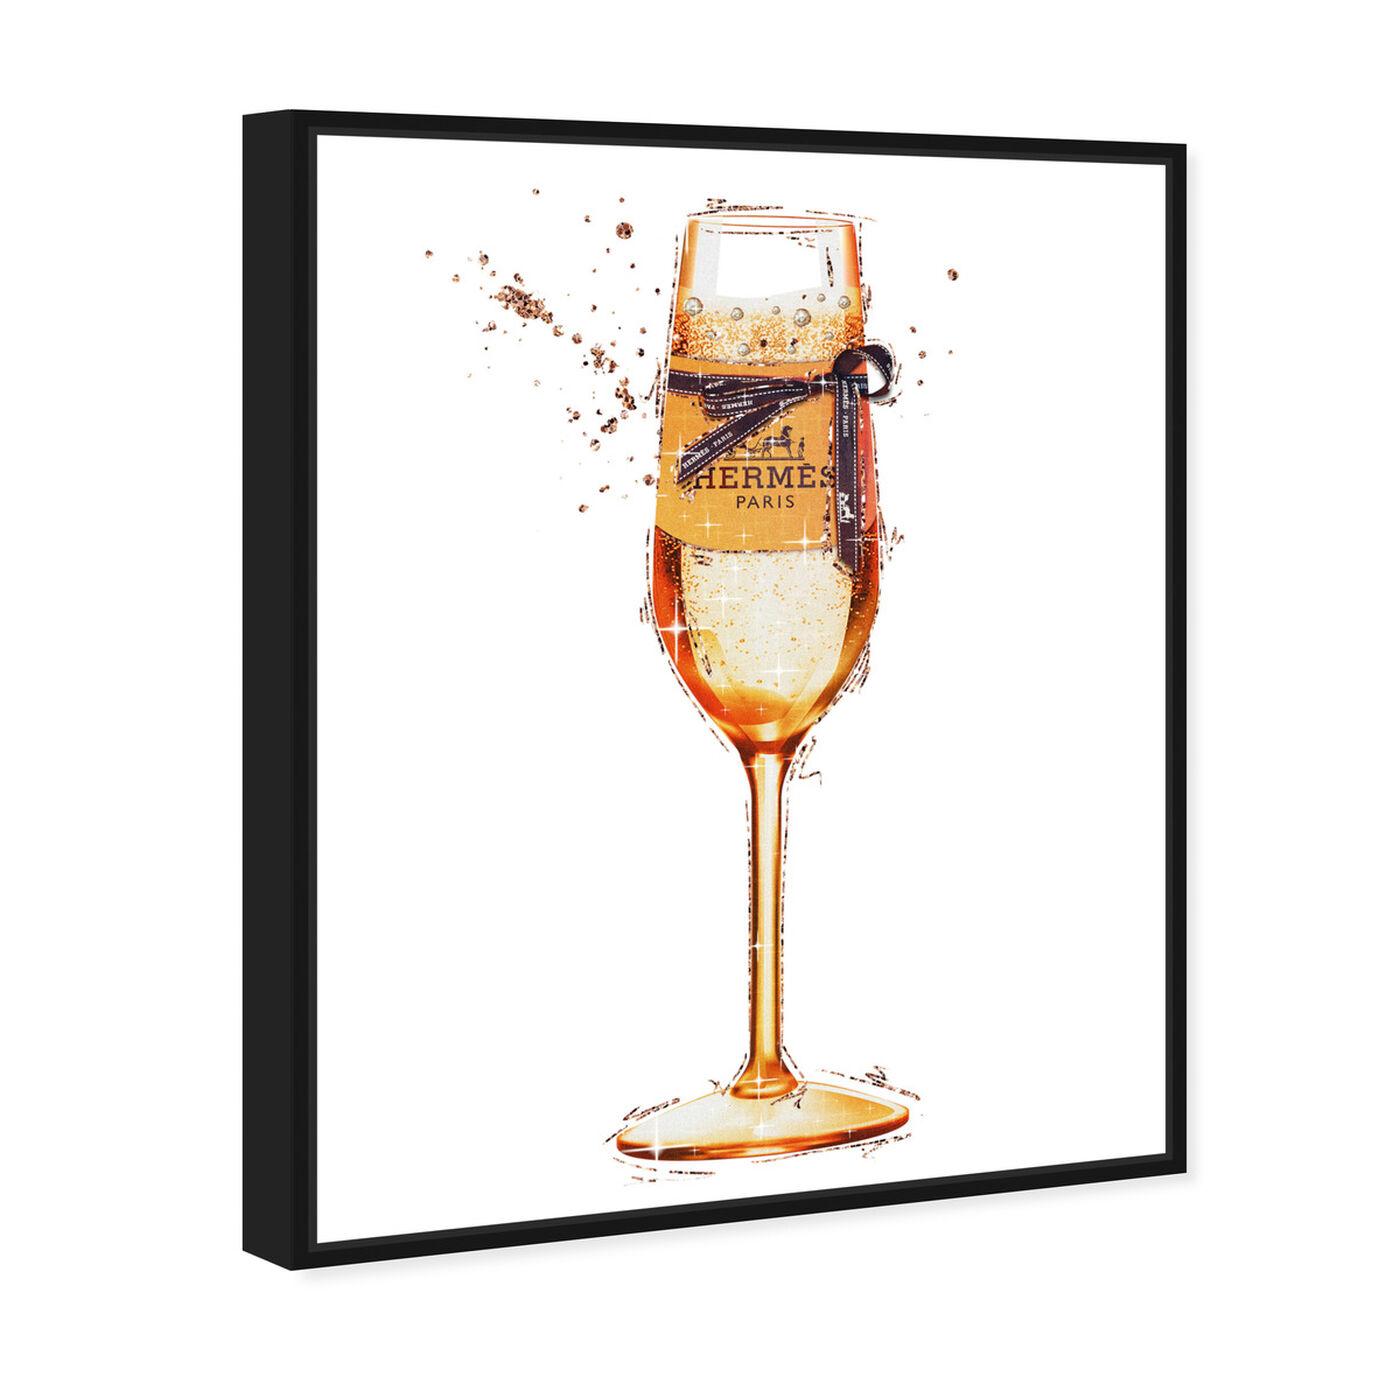 Angled view of The Orange Toast featuring drinks and spirits and champagne art.